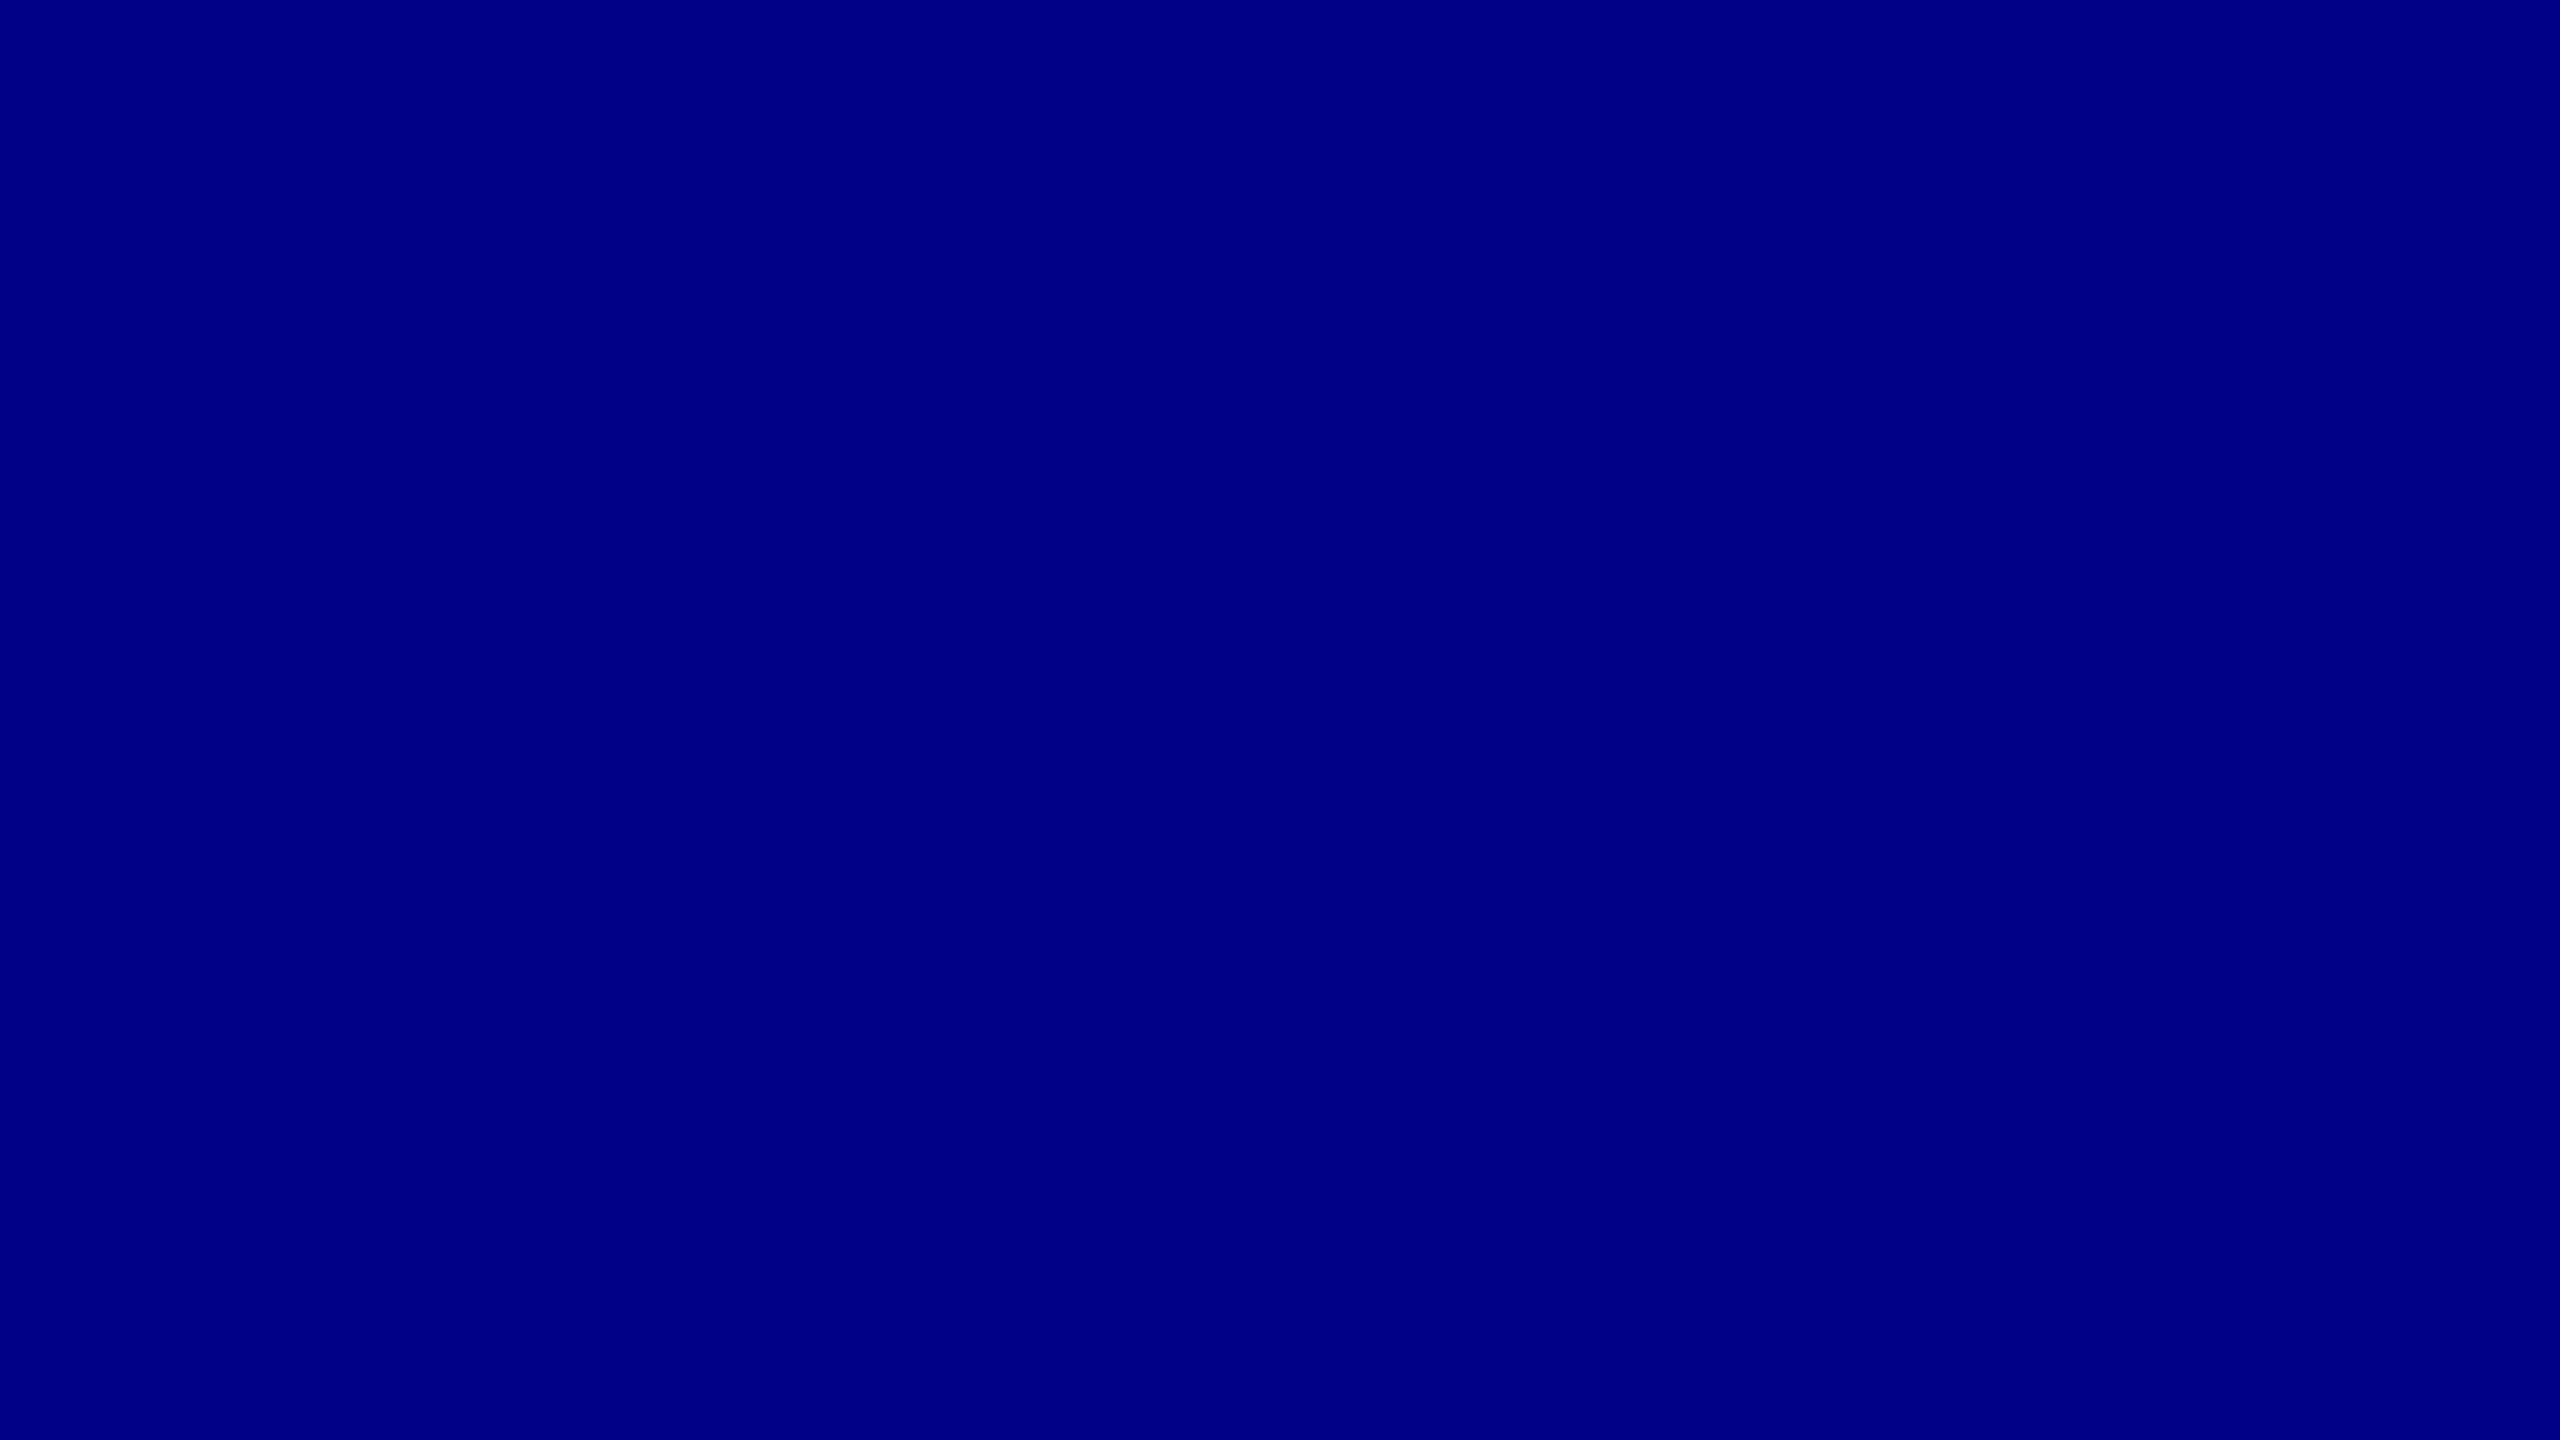 Dark Blue Backgrounds (56+ images)